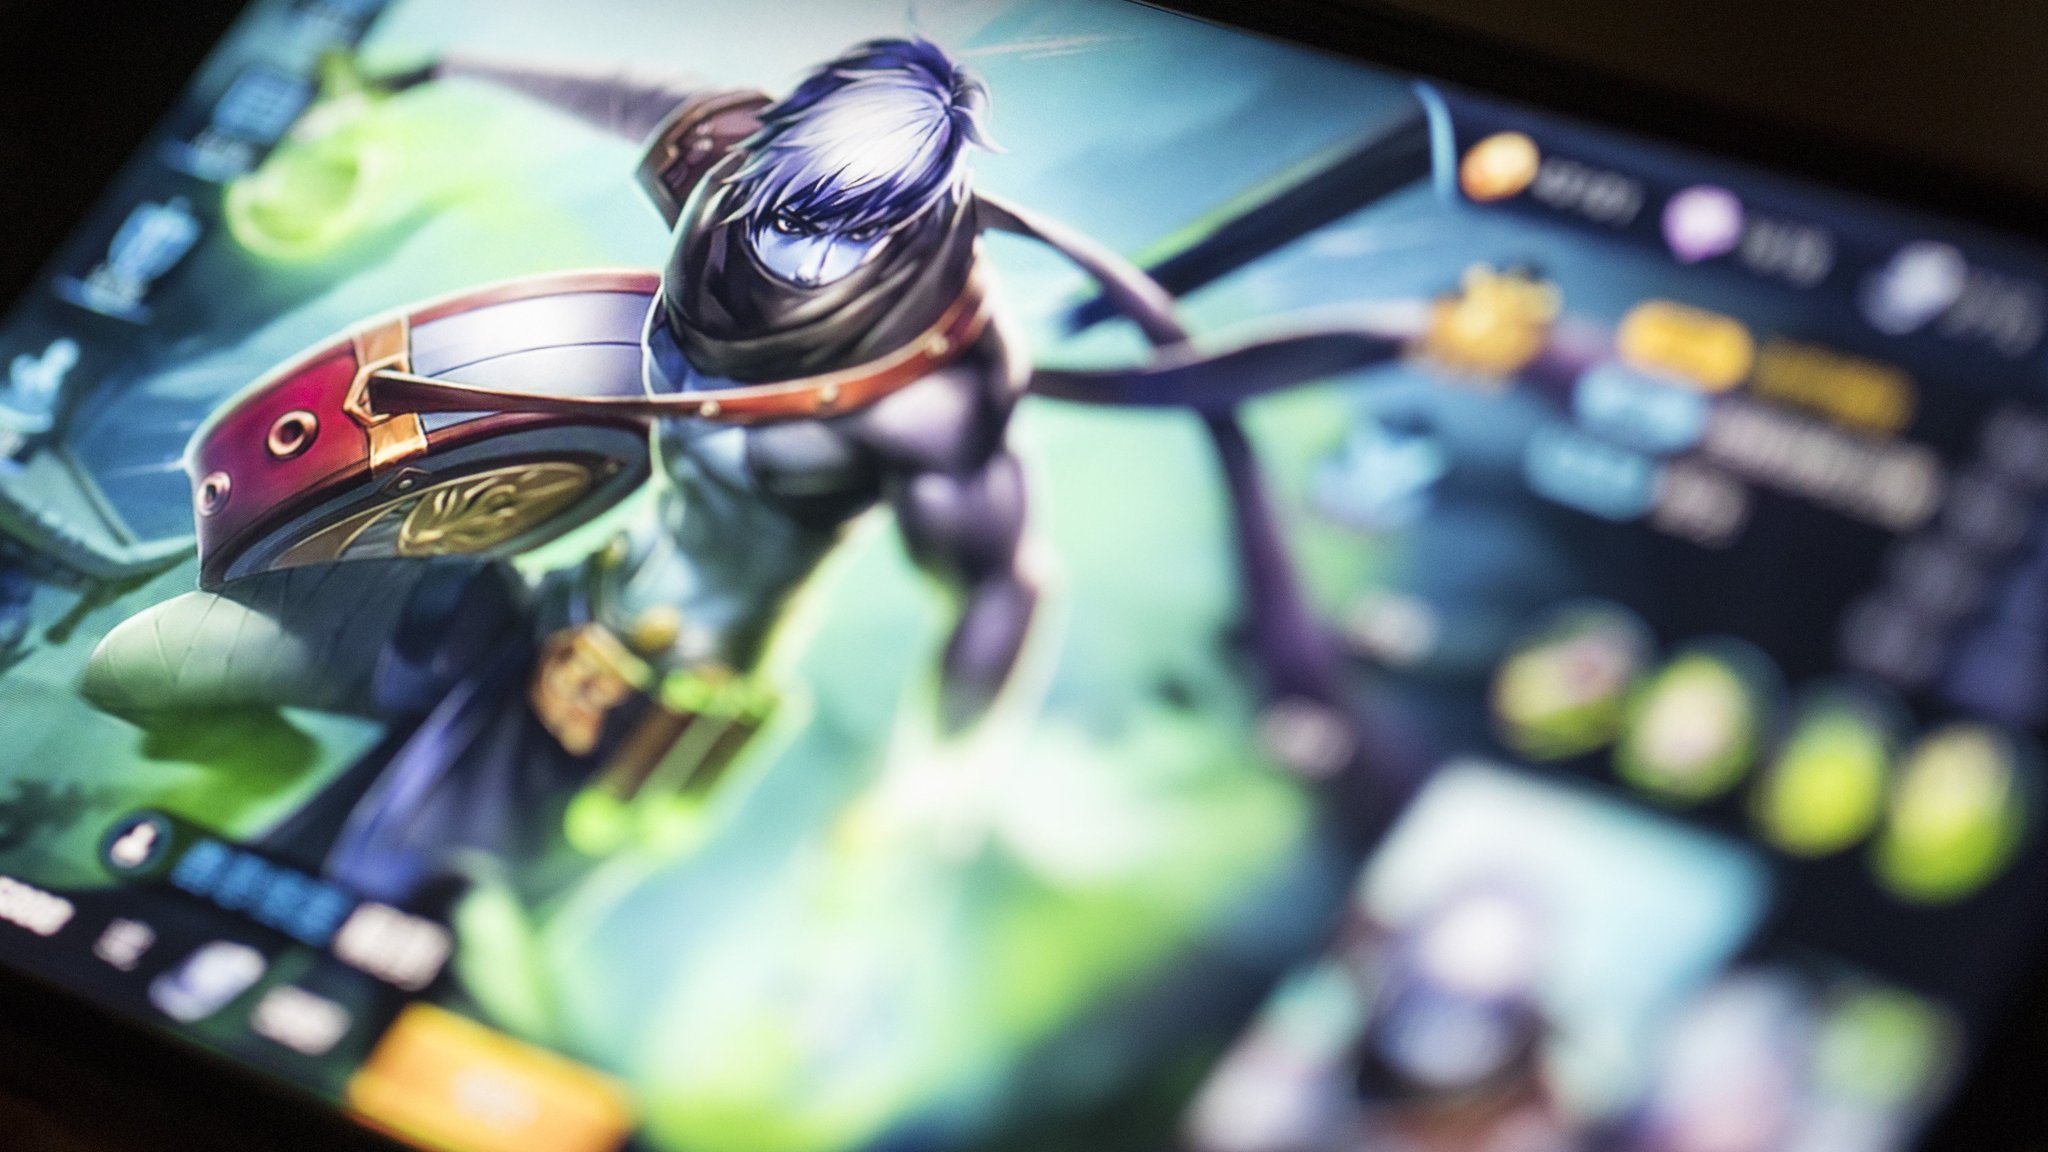 Tencent forced to pull new video game by Beijing regulators